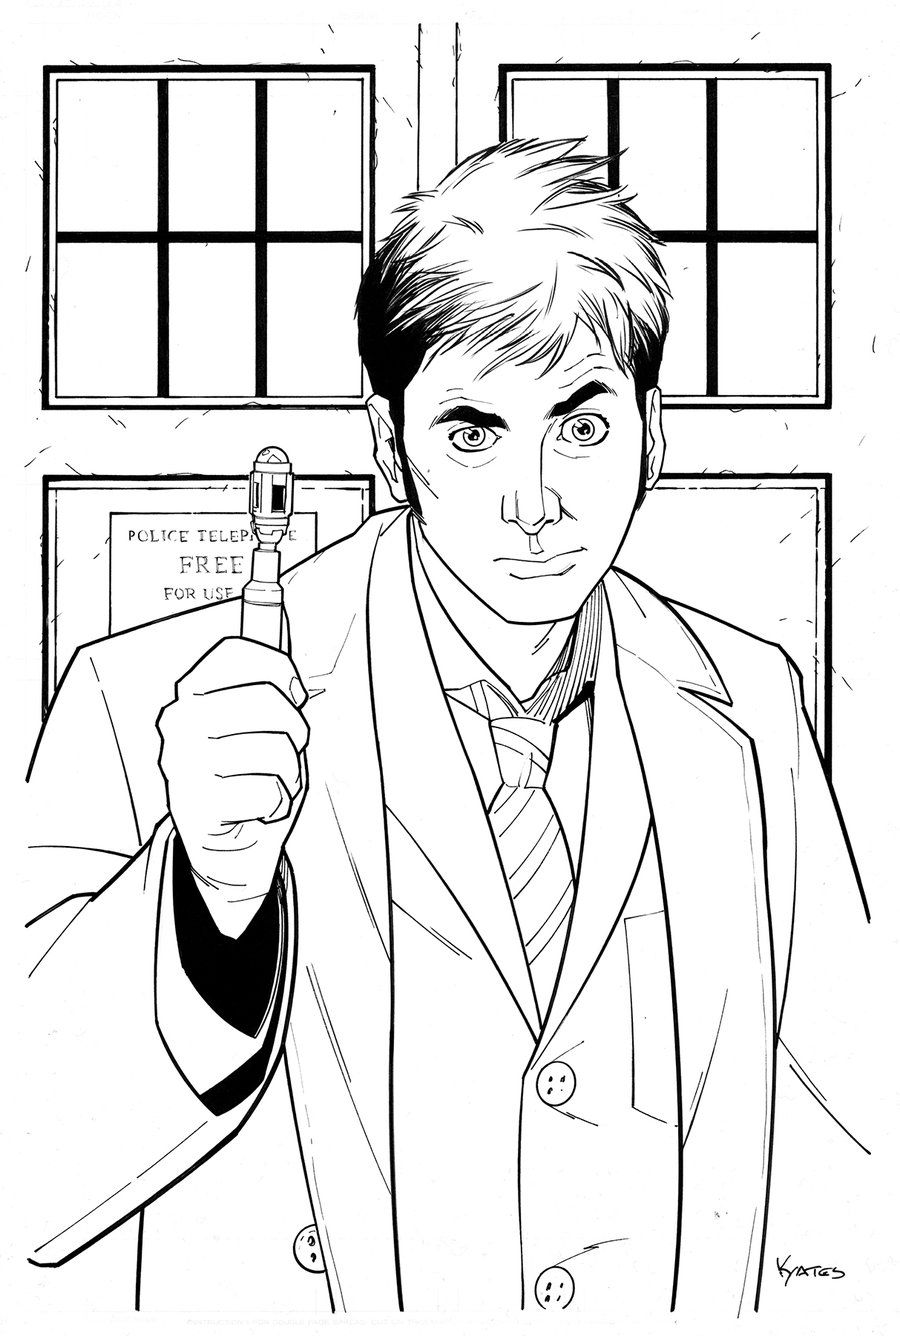 doctor who coloring pages | 10th Doctor Who By KellyYates On DeviantARTPolice And Army Clipart ...